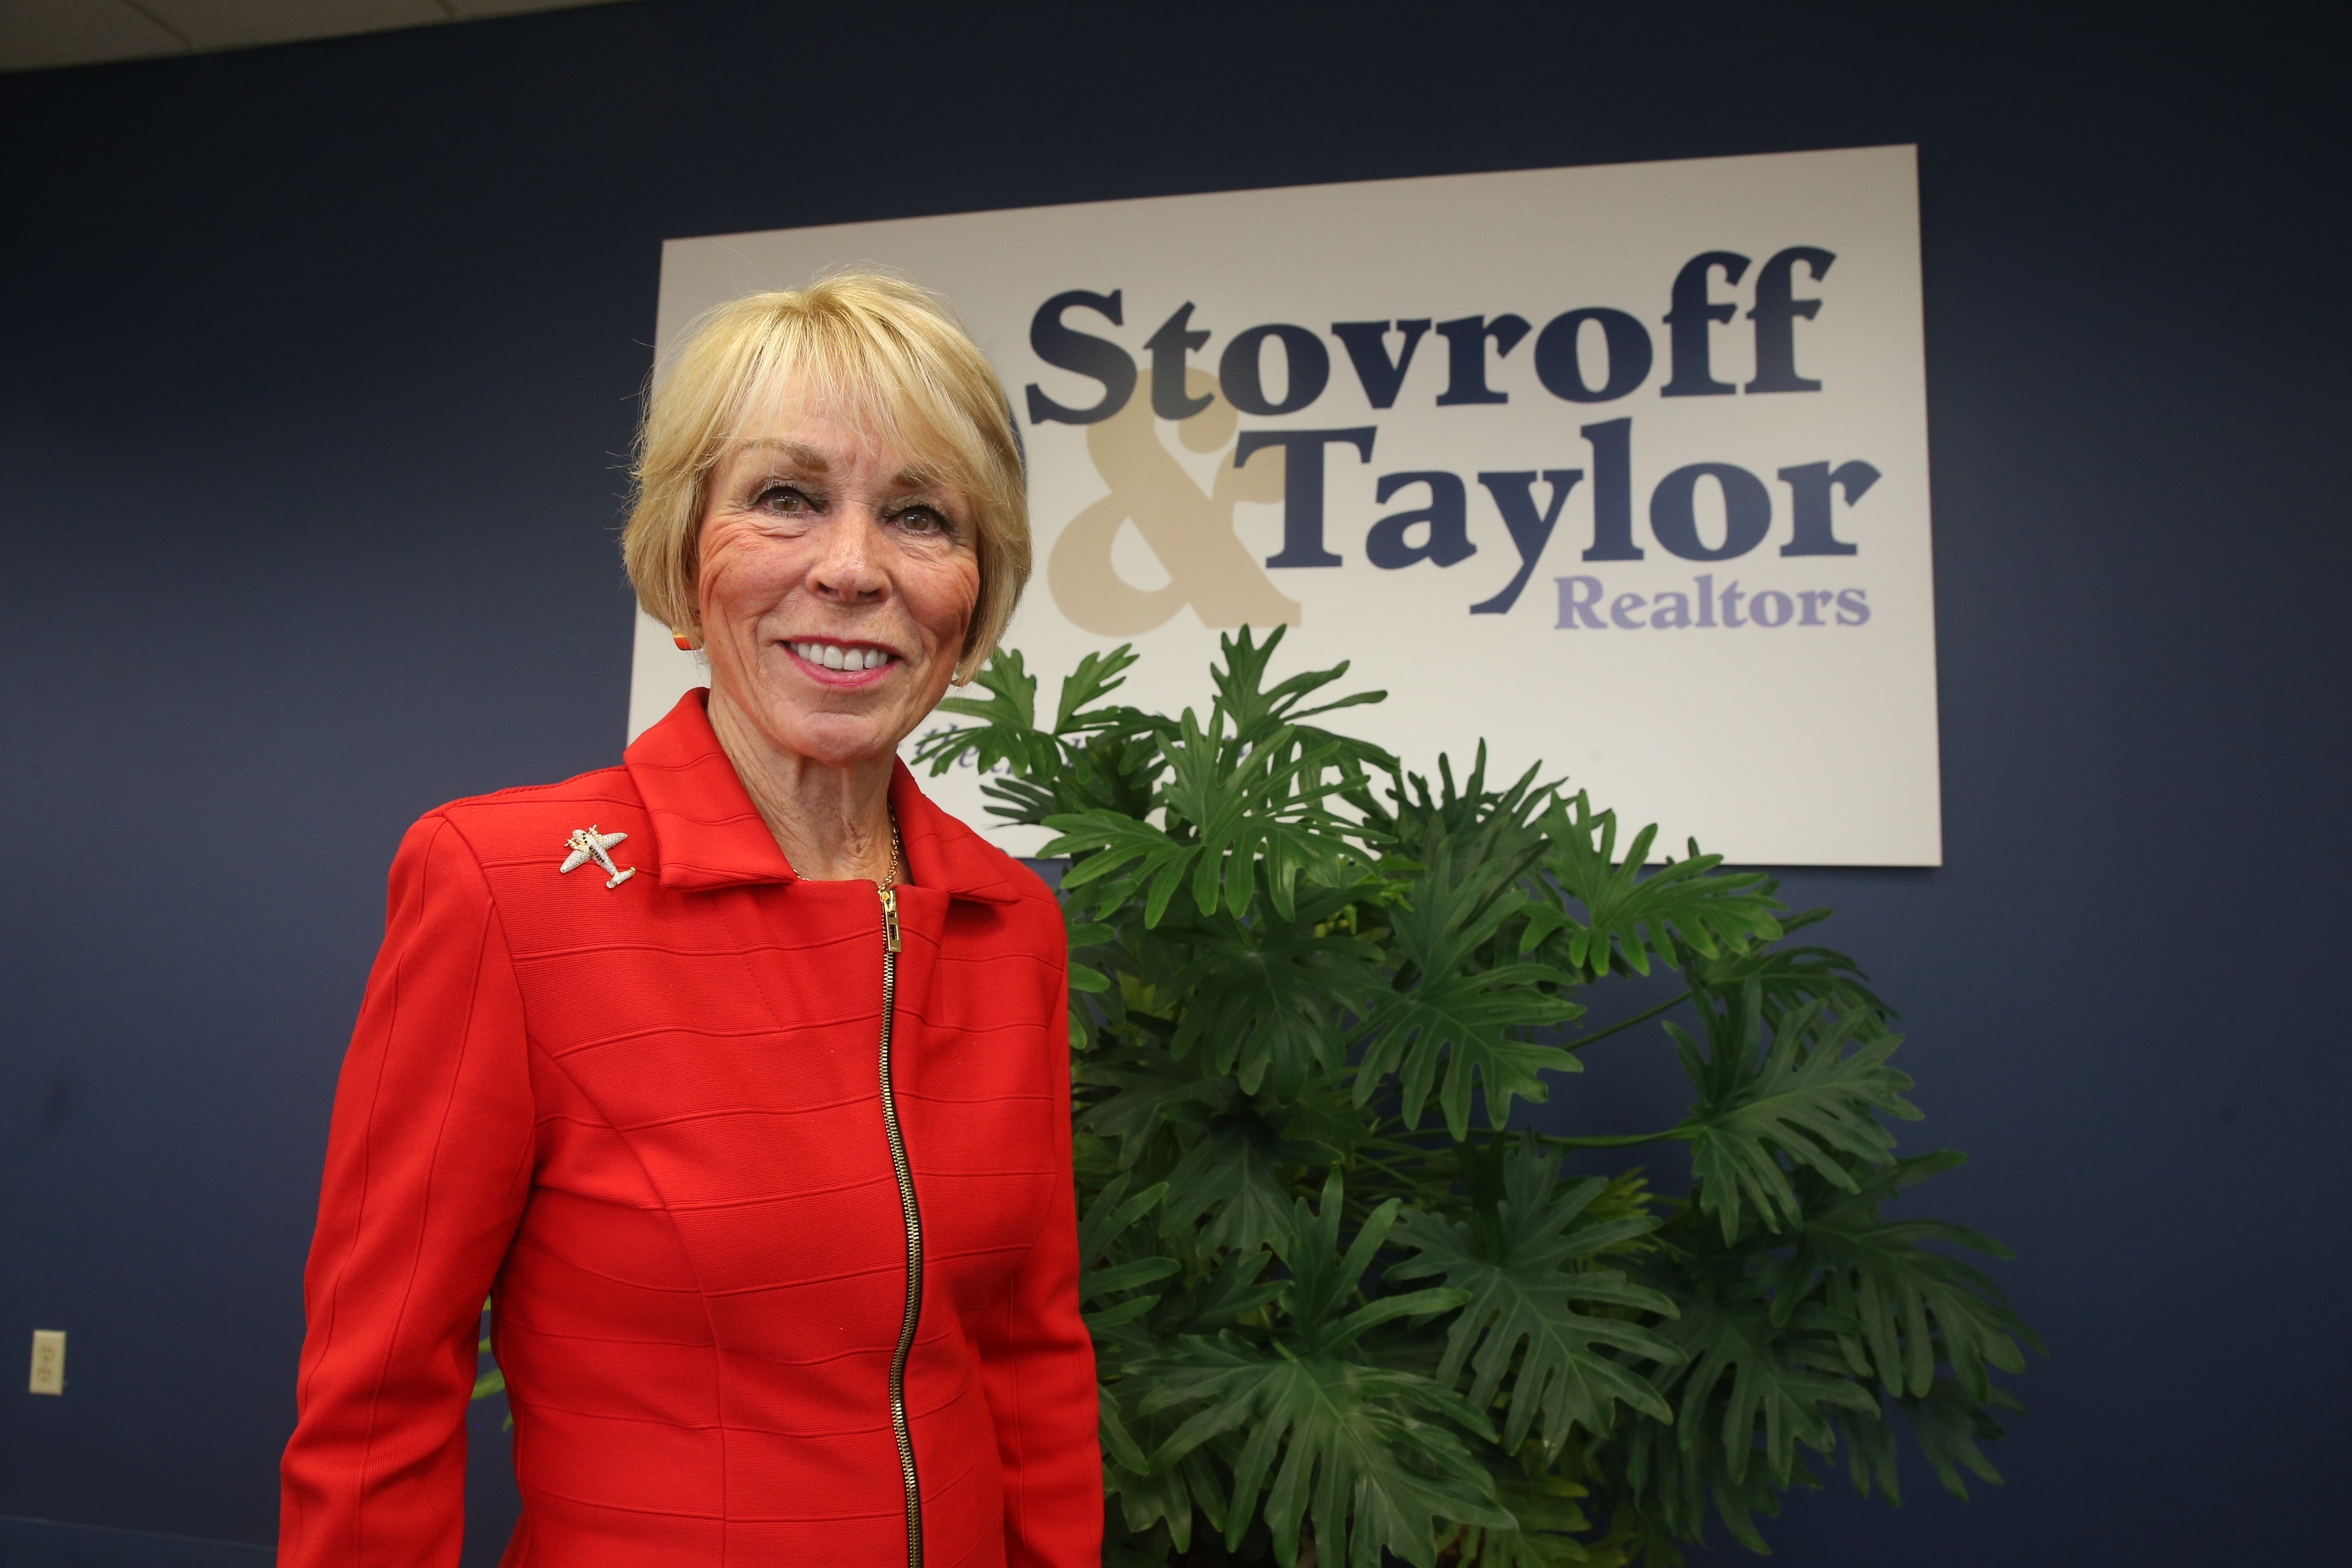 Stovroff & Taylor's Jacqueline Taylor talks about the Buffalo housing market on Wednesday Nov. 2, 2016 at the firm's Cheektowaga office. (John Hickey/Buffalo News)